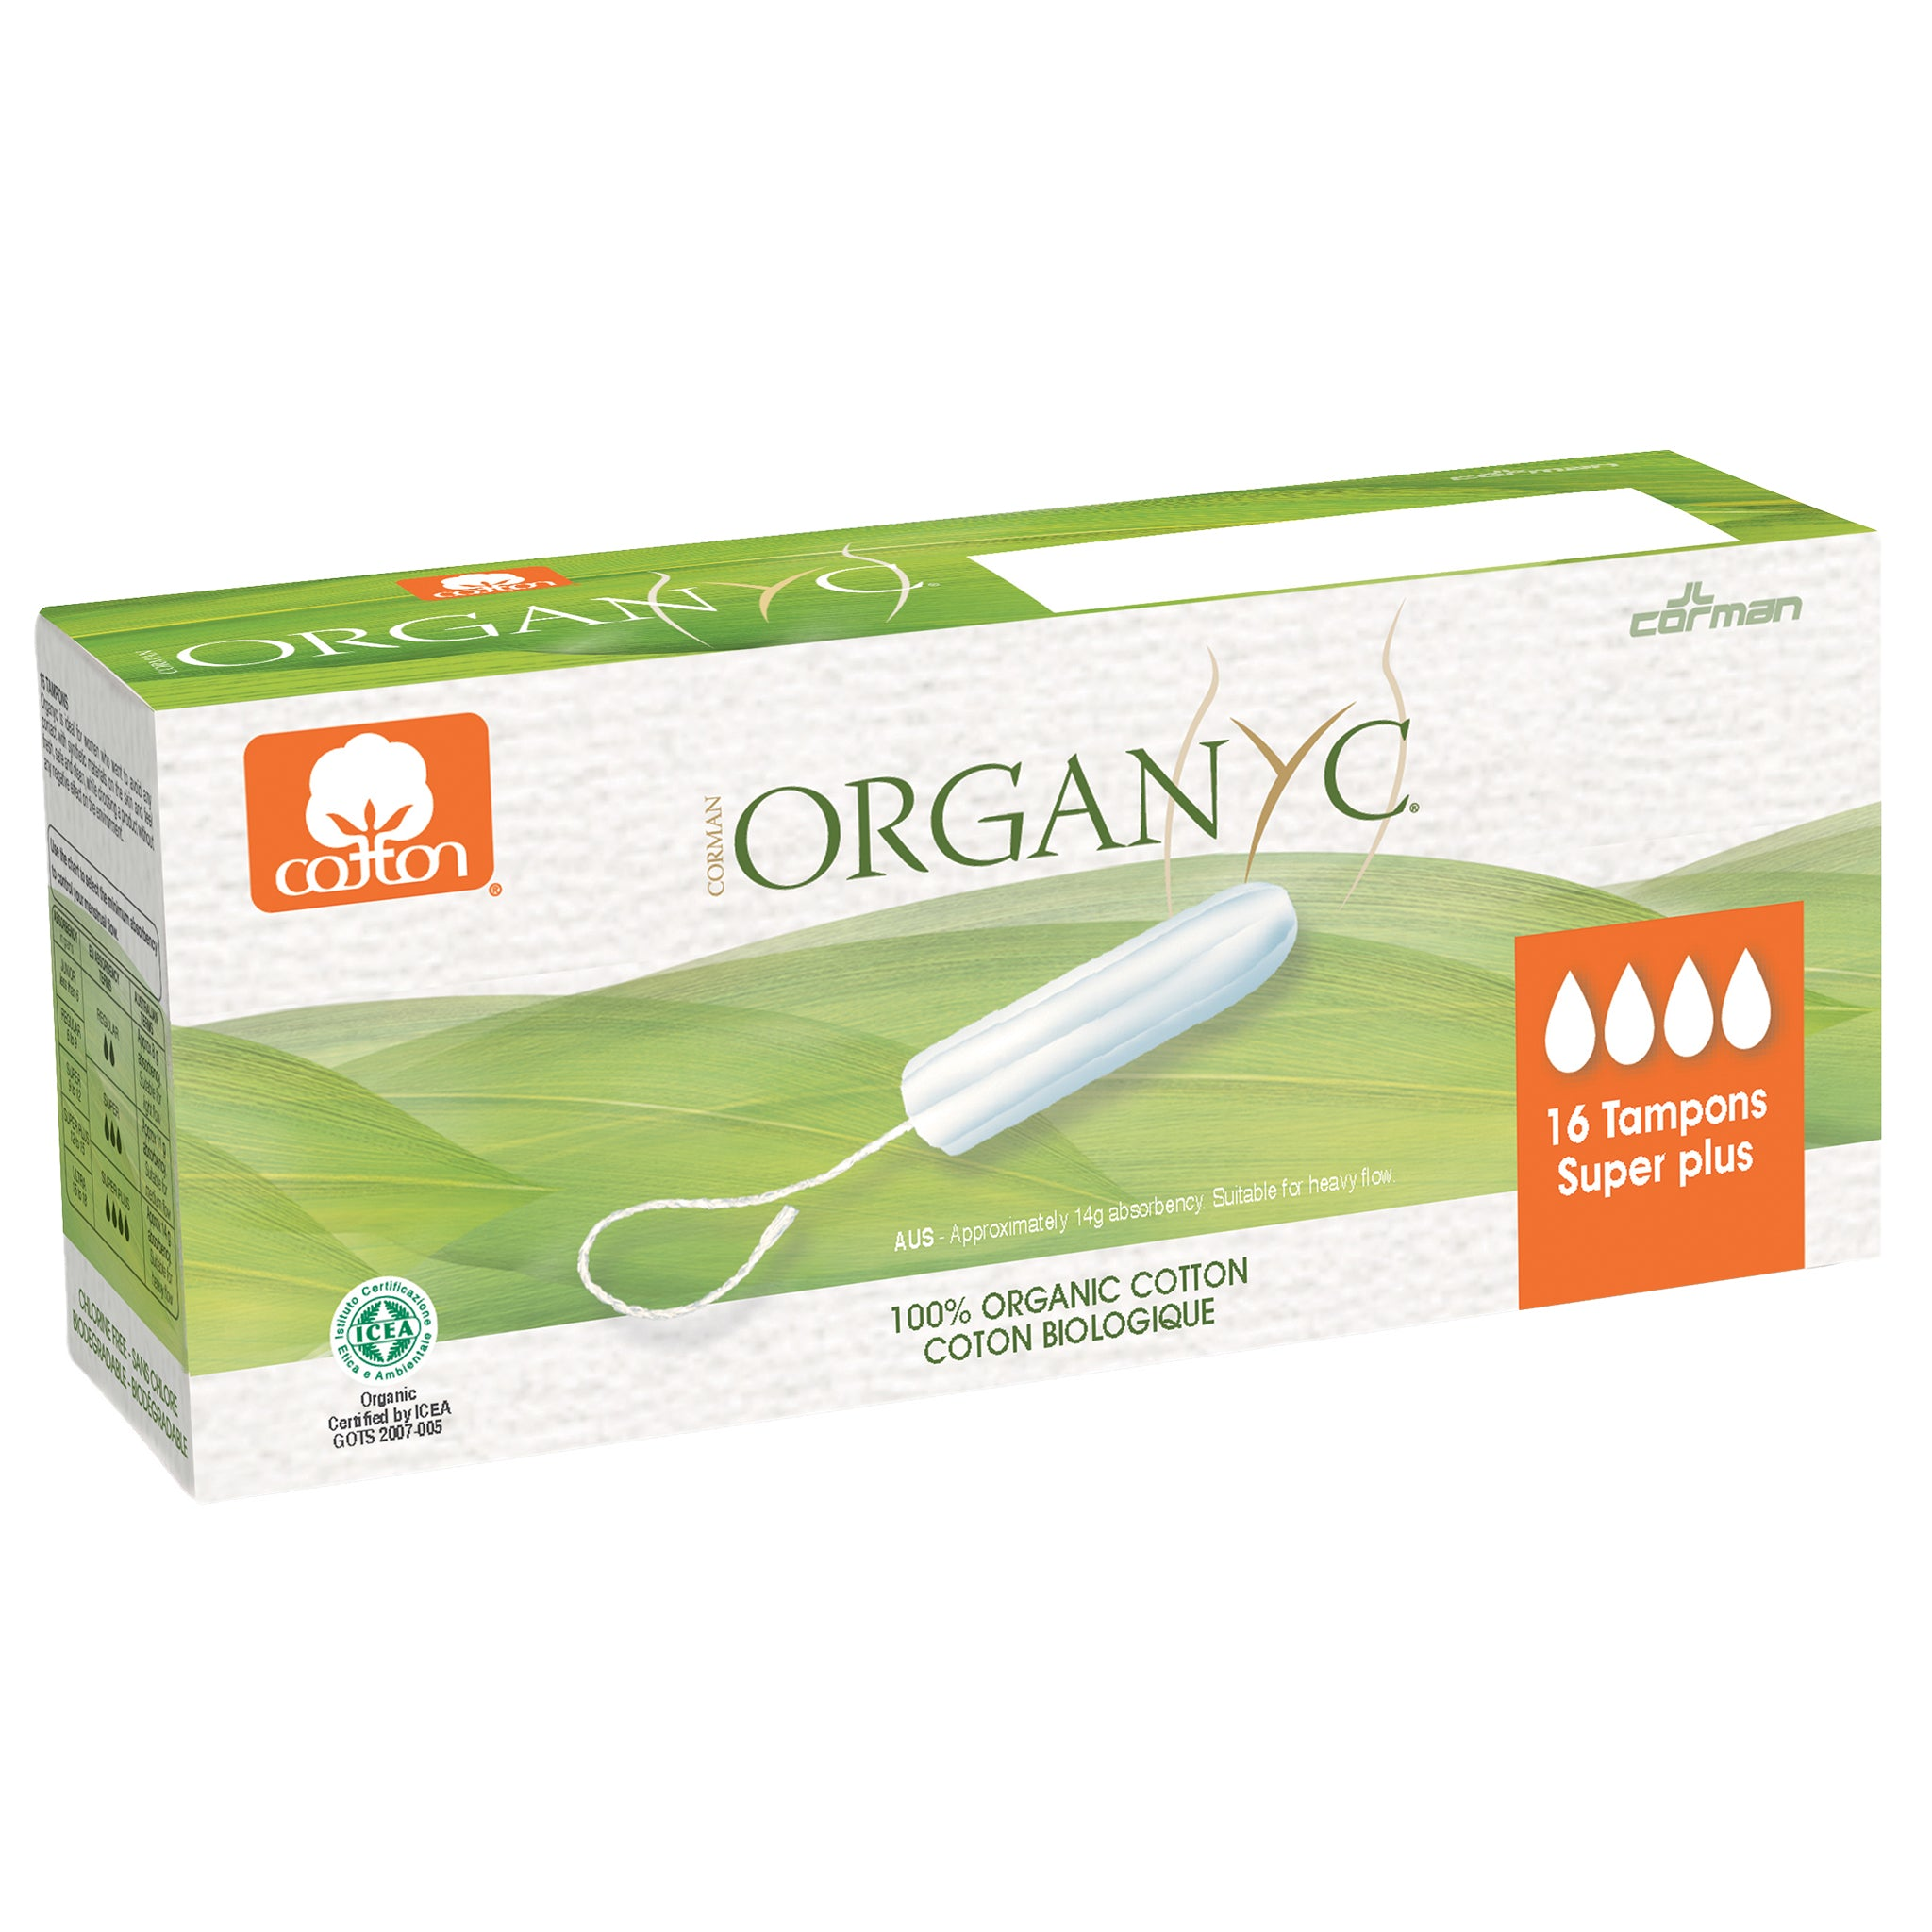 Organ(y)c Organic Cotton Tampons Super Plus